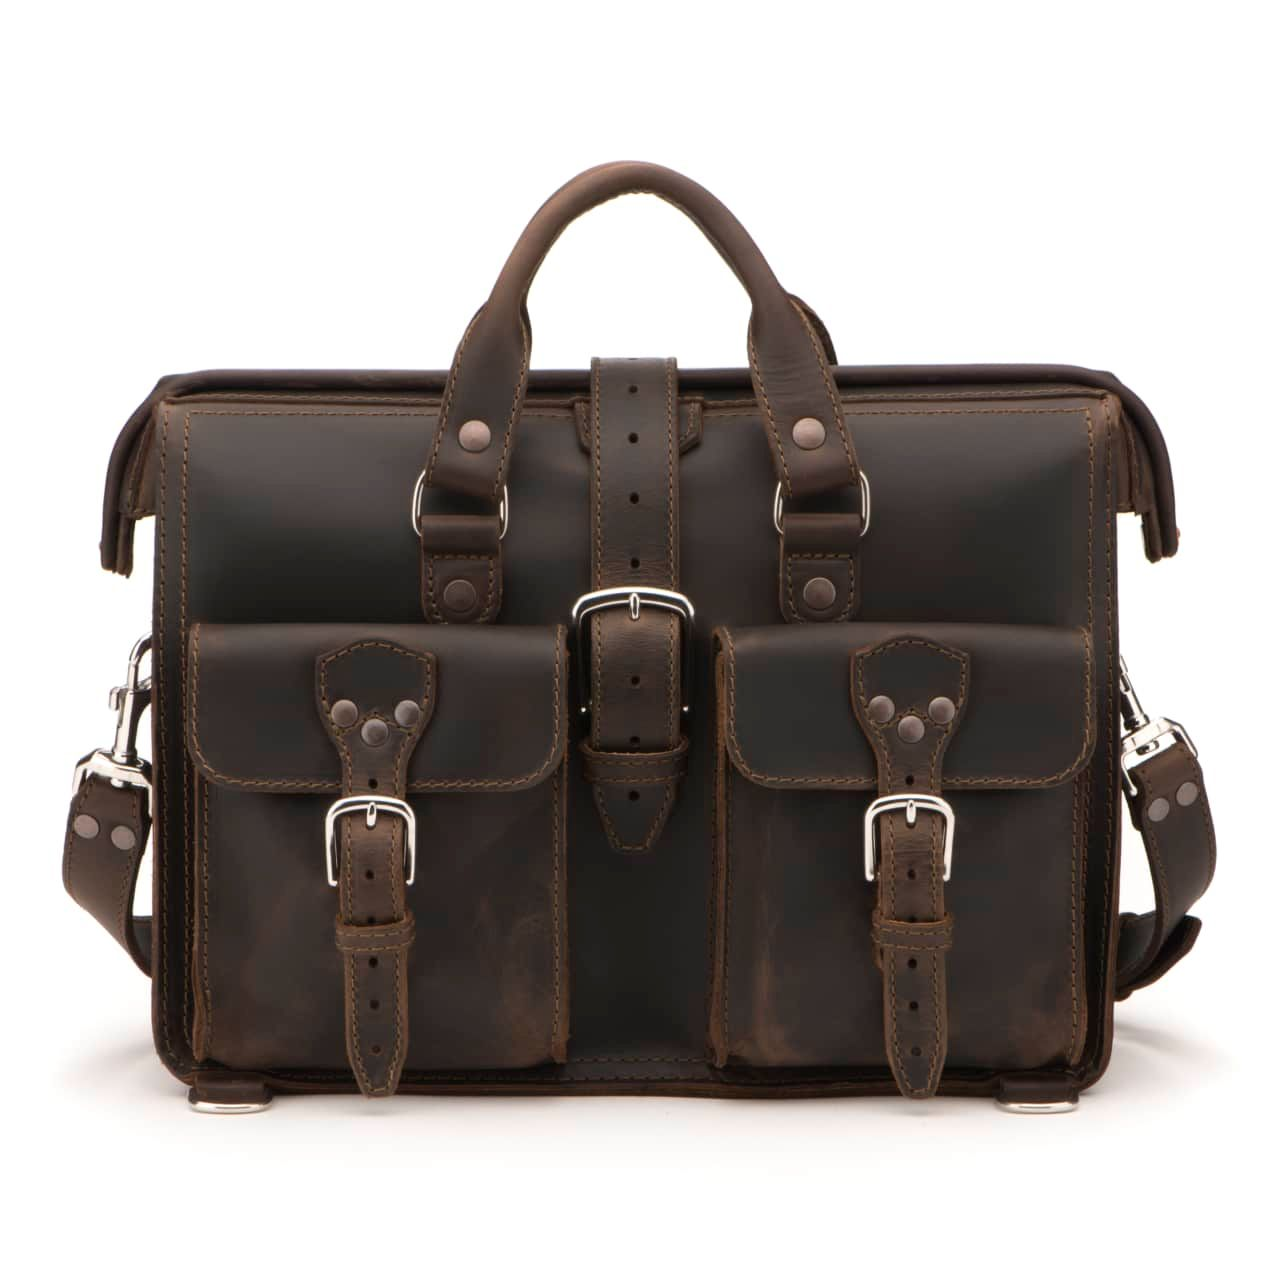 Leather Flight Bag in color Dark Coffee Brown shown from the Front